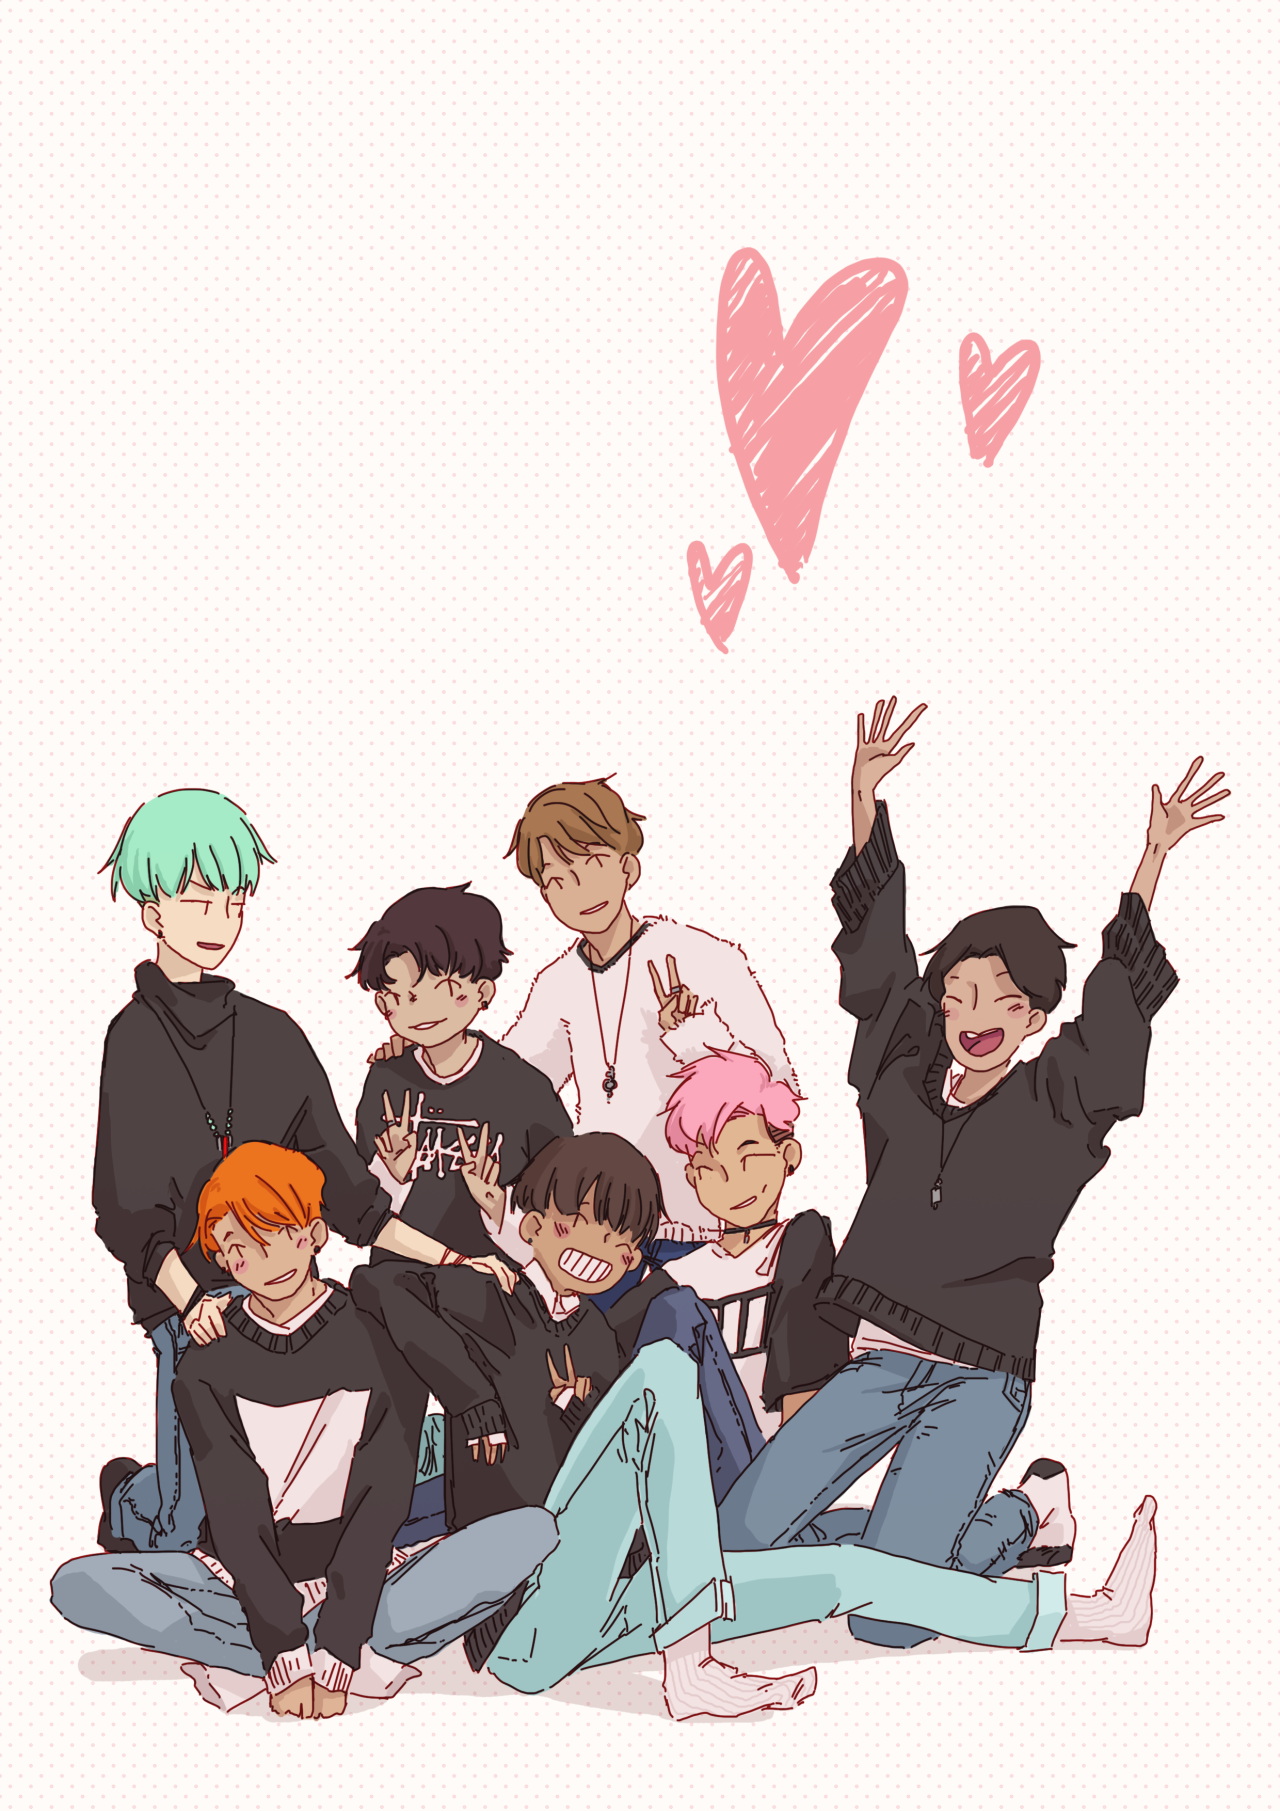 XD Theyre So Cute BTS Pinterest BTS Fanart And Kpop